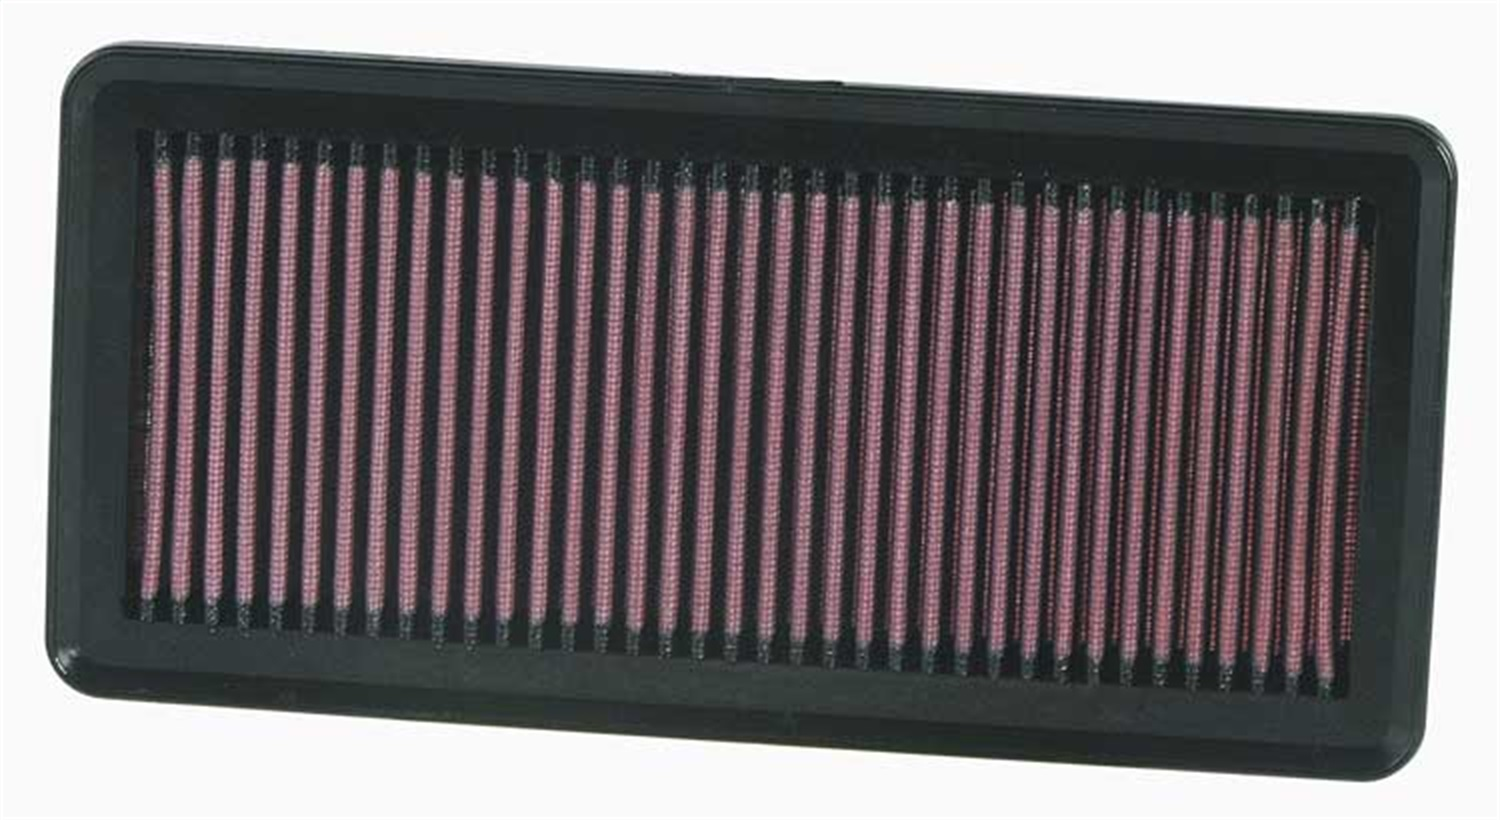 K&N Filters 33-2371 Air Filter Fits 07-09 SX4 33-2371